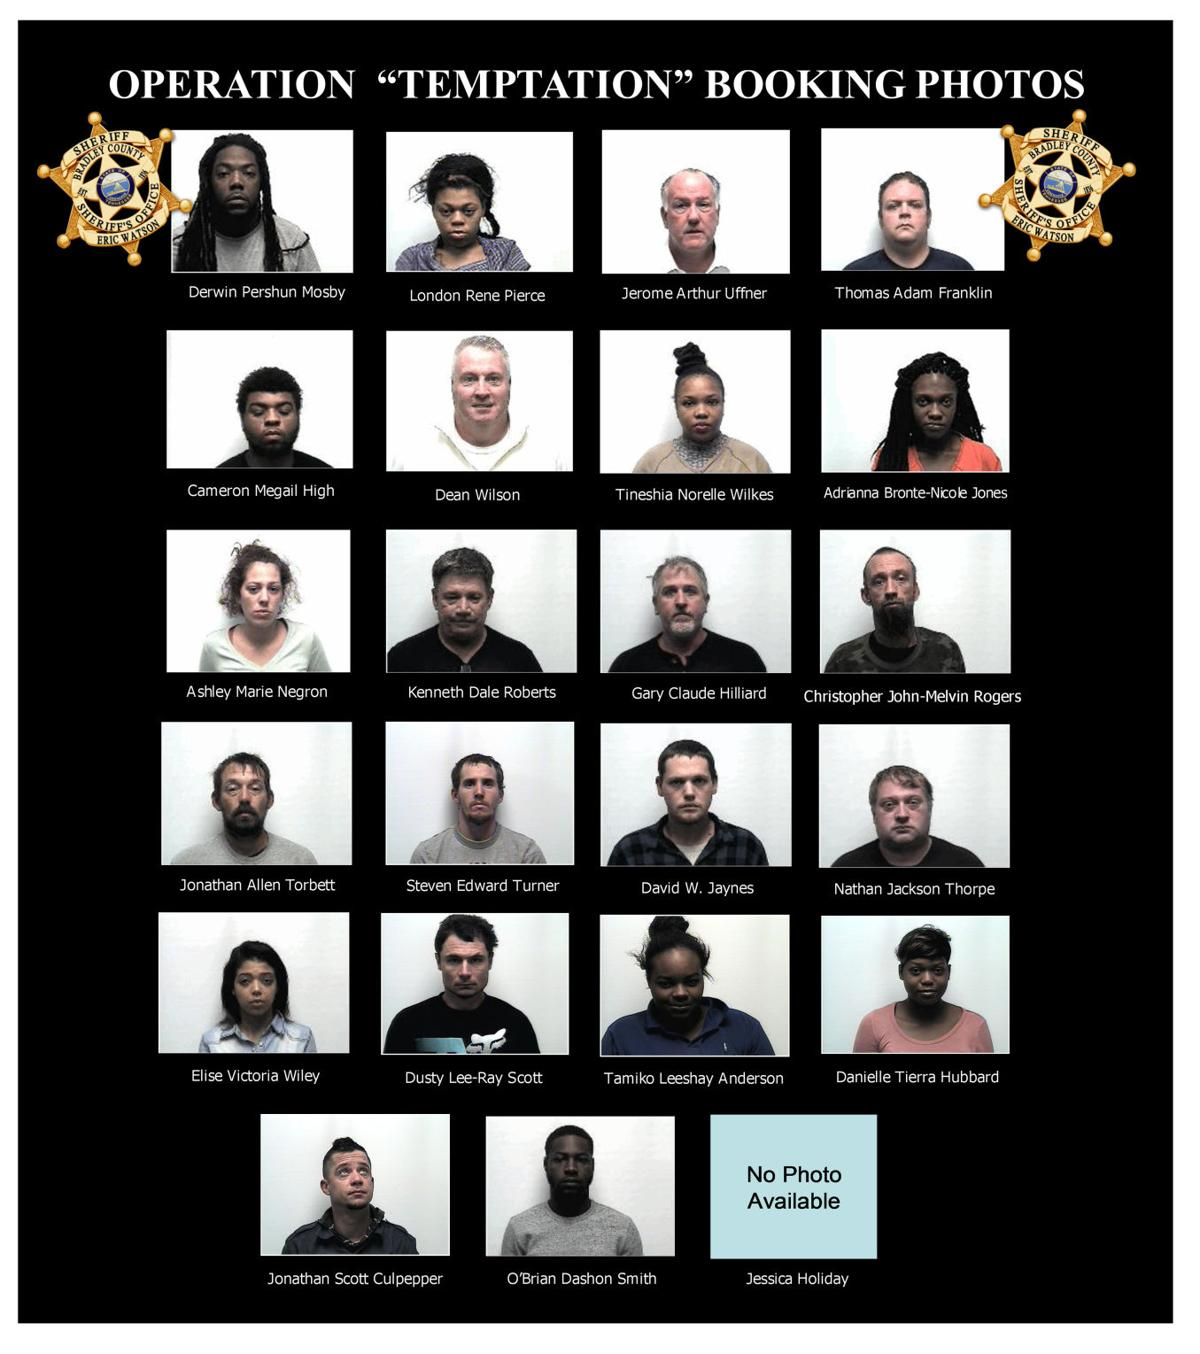 Operation Temptation booking photos  Source: Bradley County Sheriff's Office